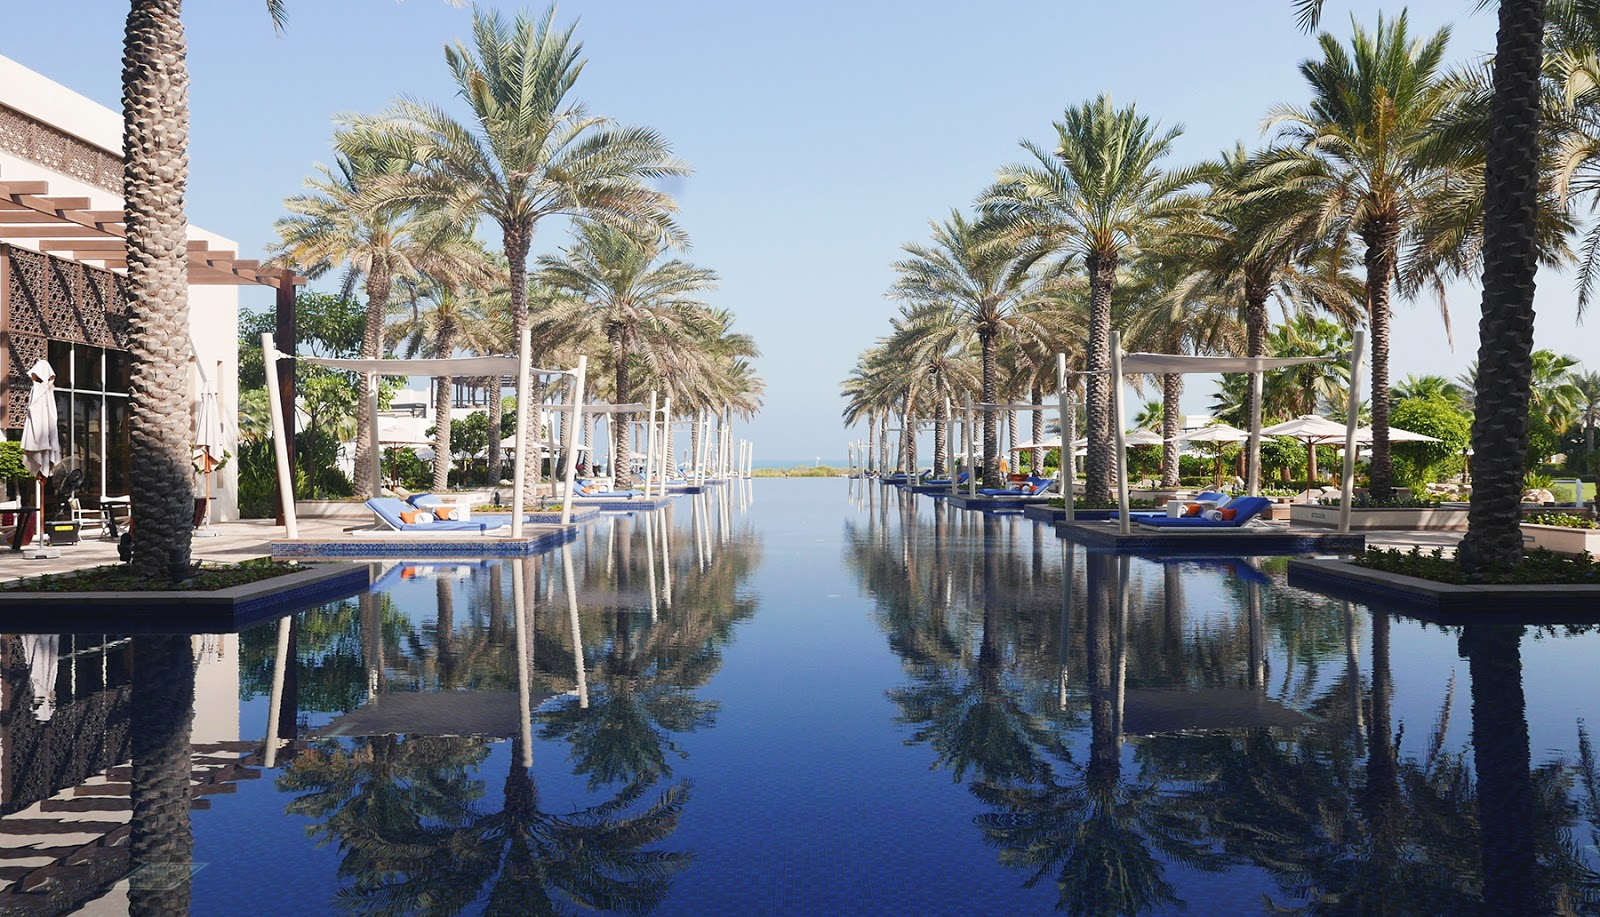 Euriental | luxury travel & style | Park Hyatt Abu Dhabi